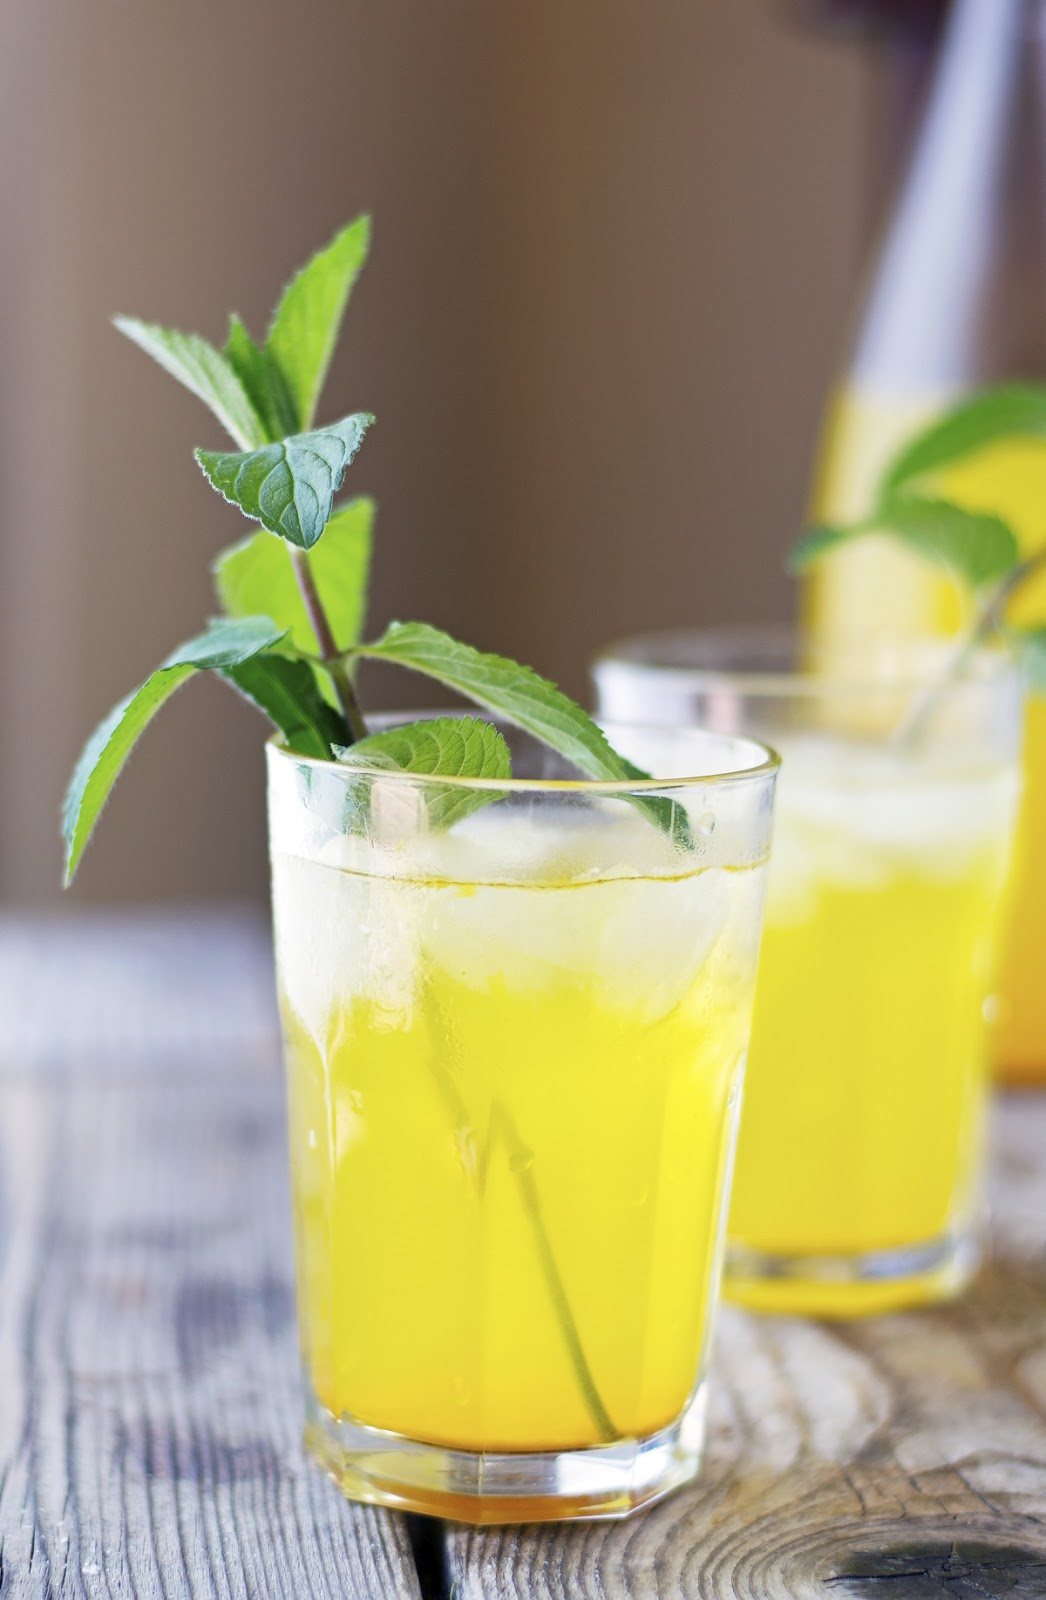 Turmeric and Ginger Iced Tea